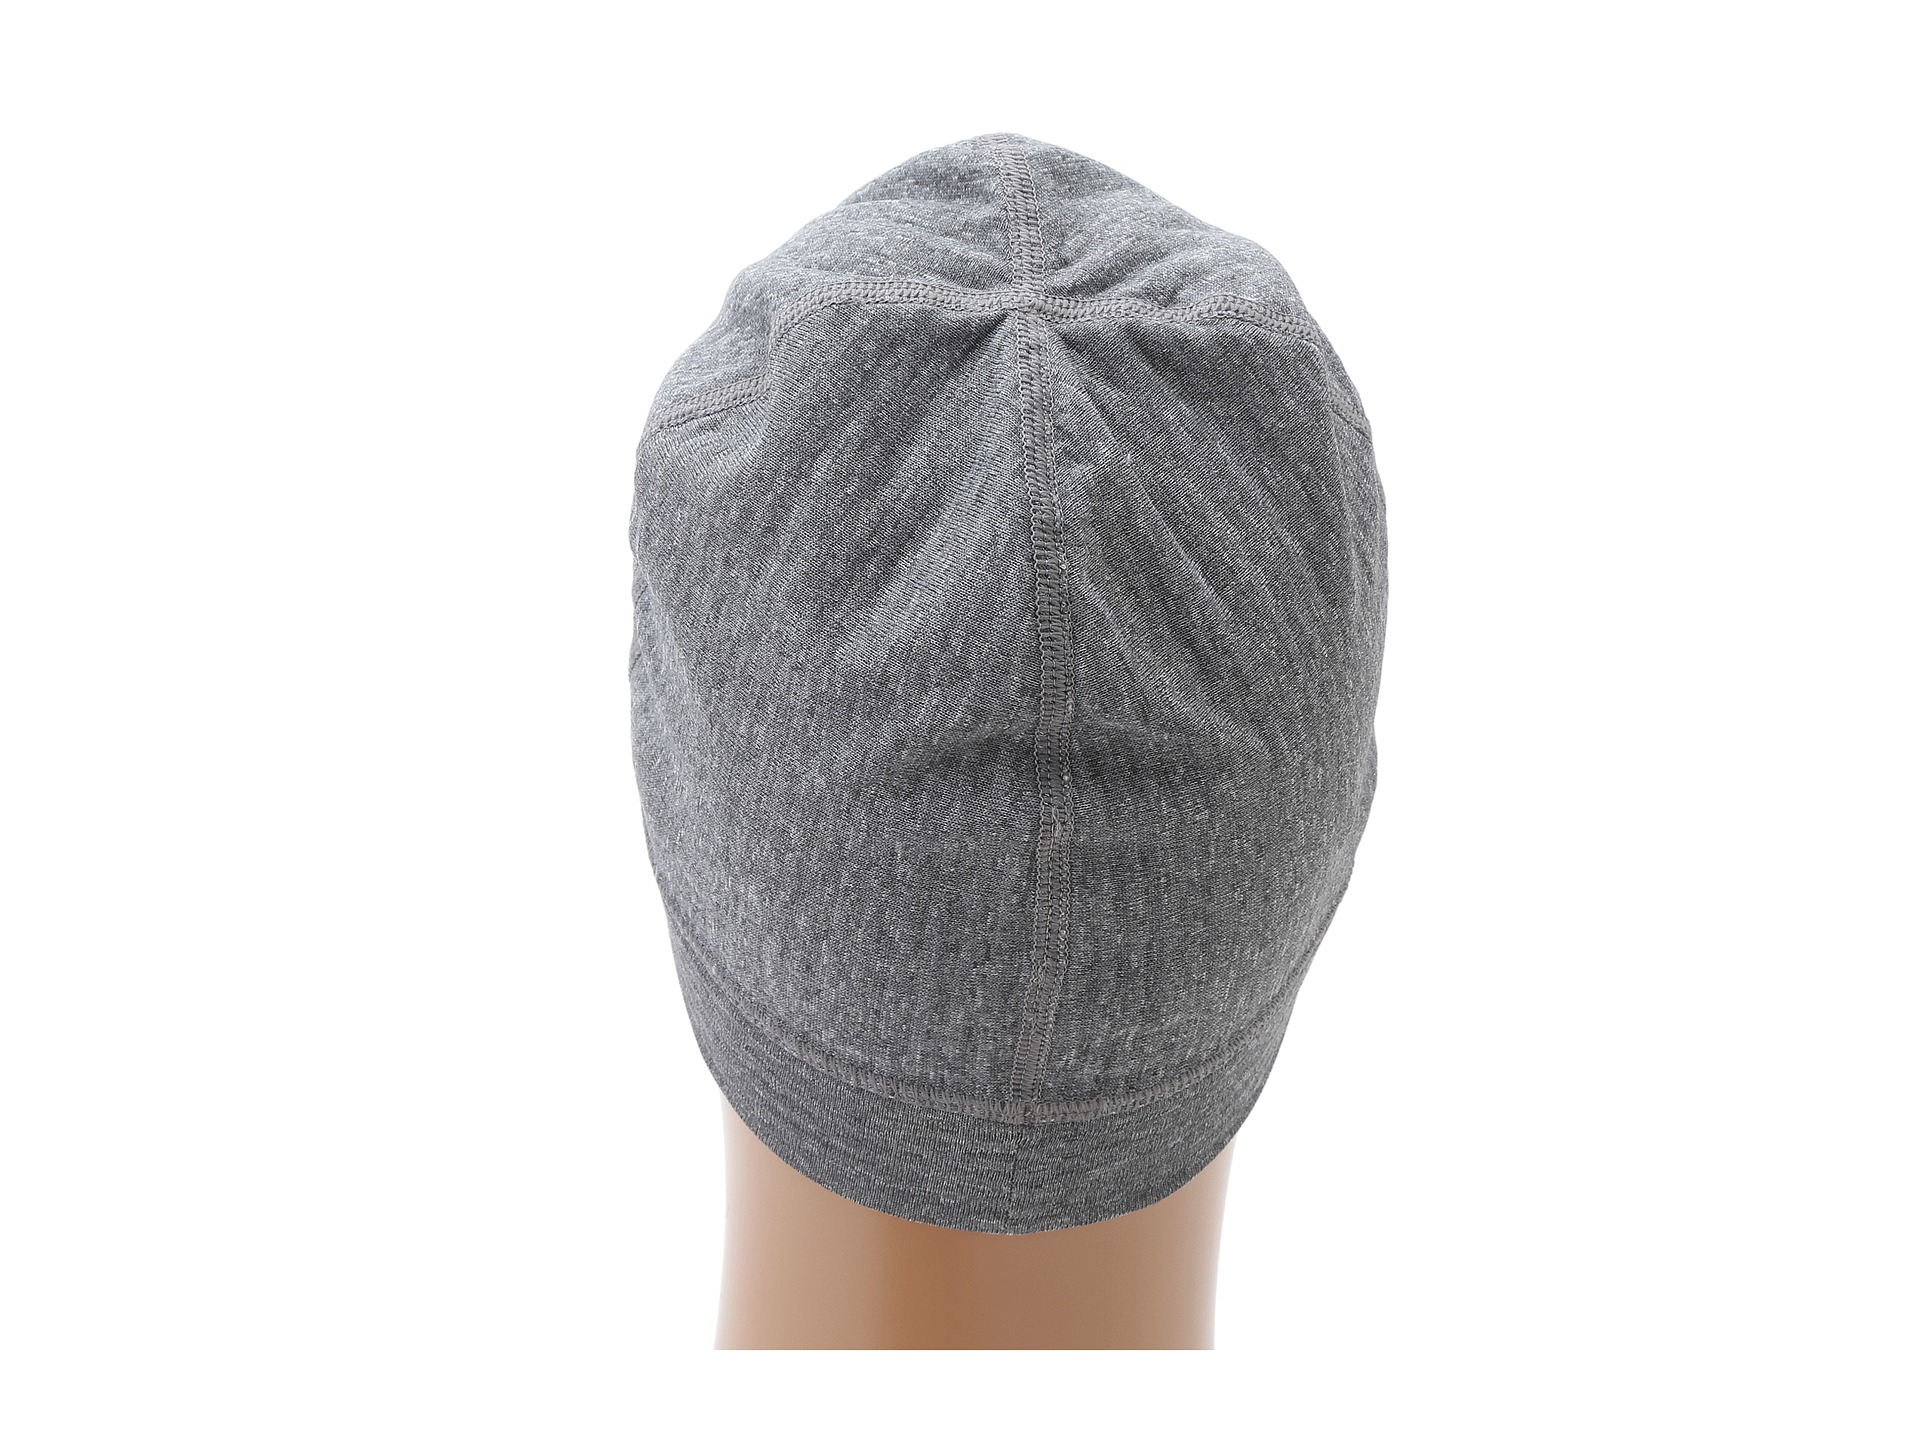 47ece860a4143 Patagonia Capilene 4 Expedition Weight Beanie in Gray - Lyst